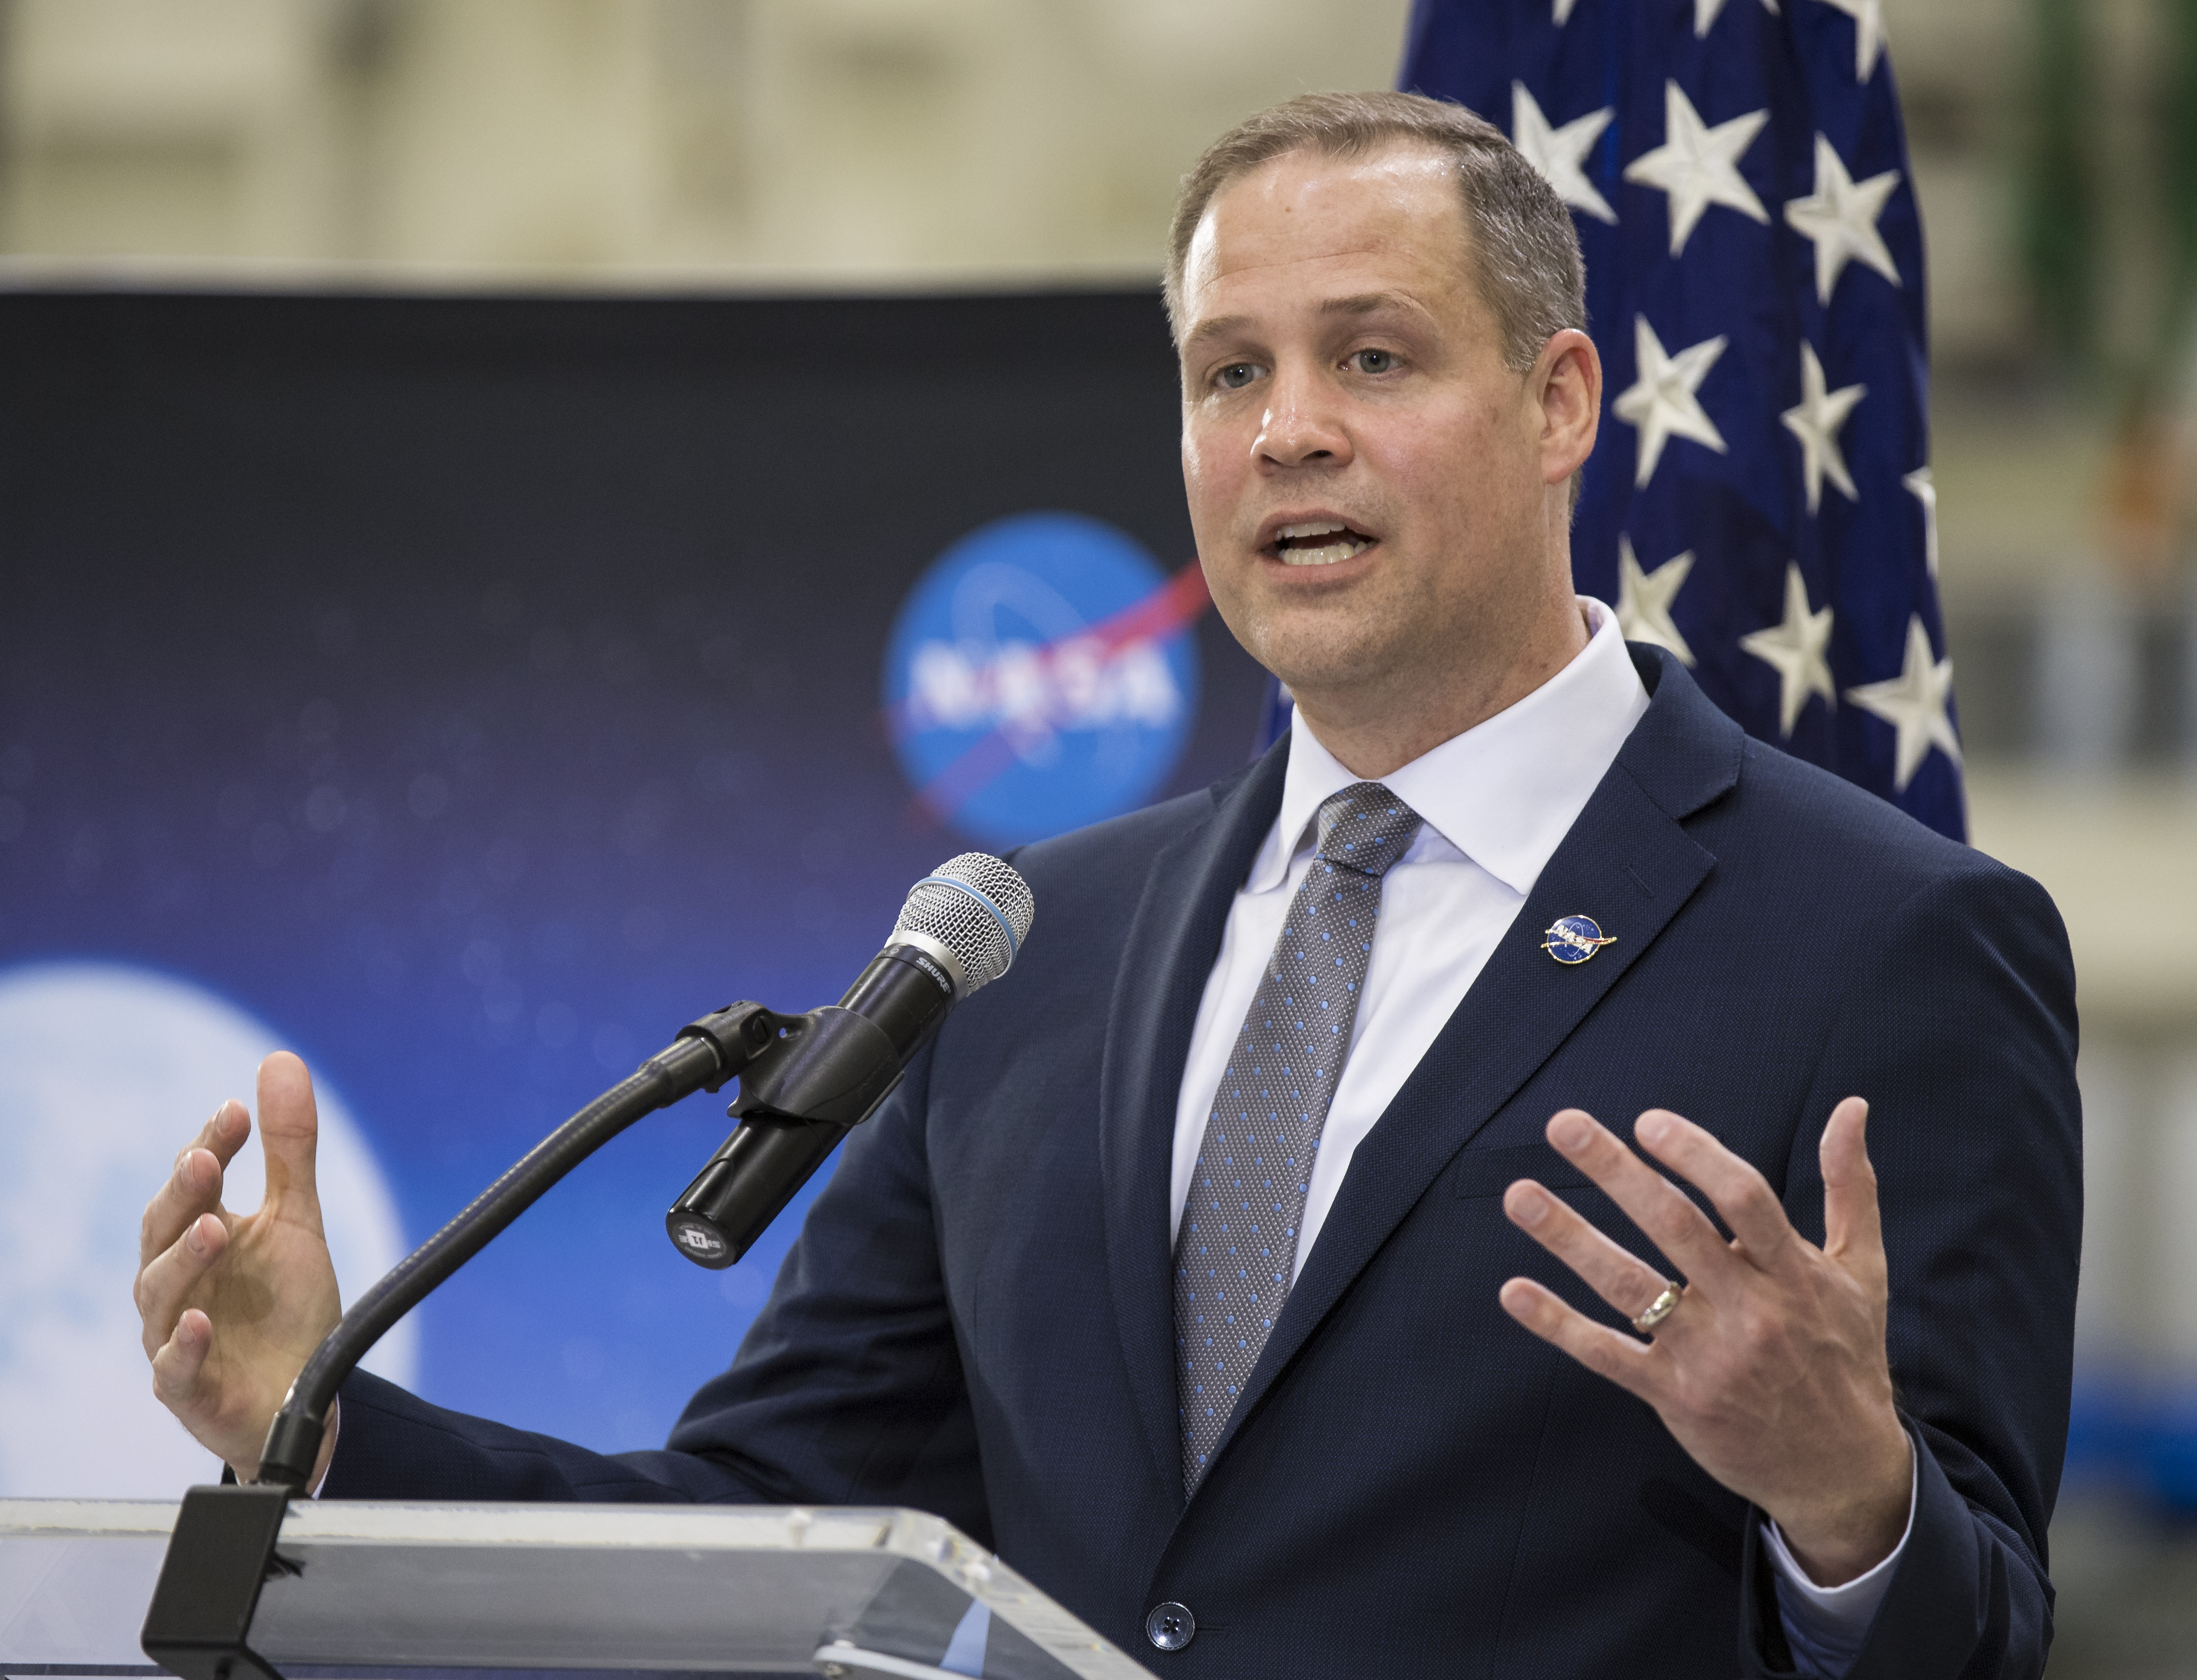 NASA Administrator Jim Bridenstine said that India's recent anti-satellite test increased the risk to the International Space Station by 44%.